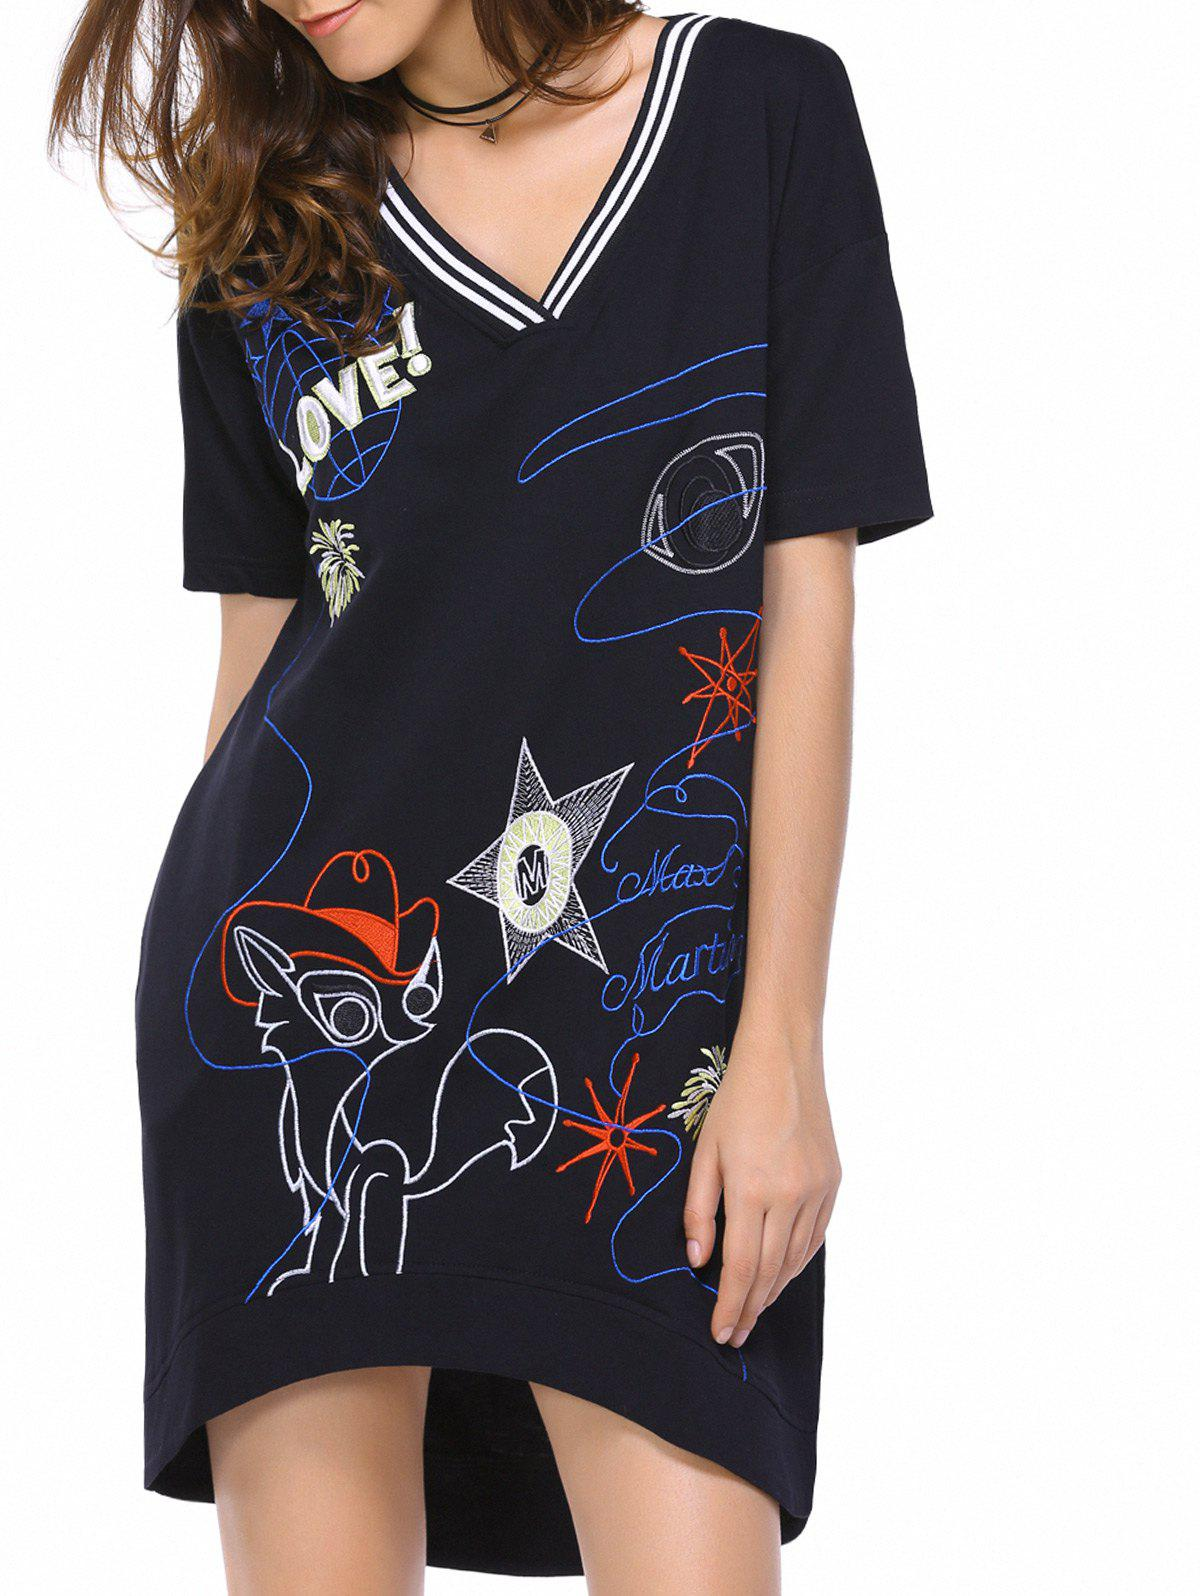 Casual Women's Short Sleeve V-Neck Embroidery Design Dress